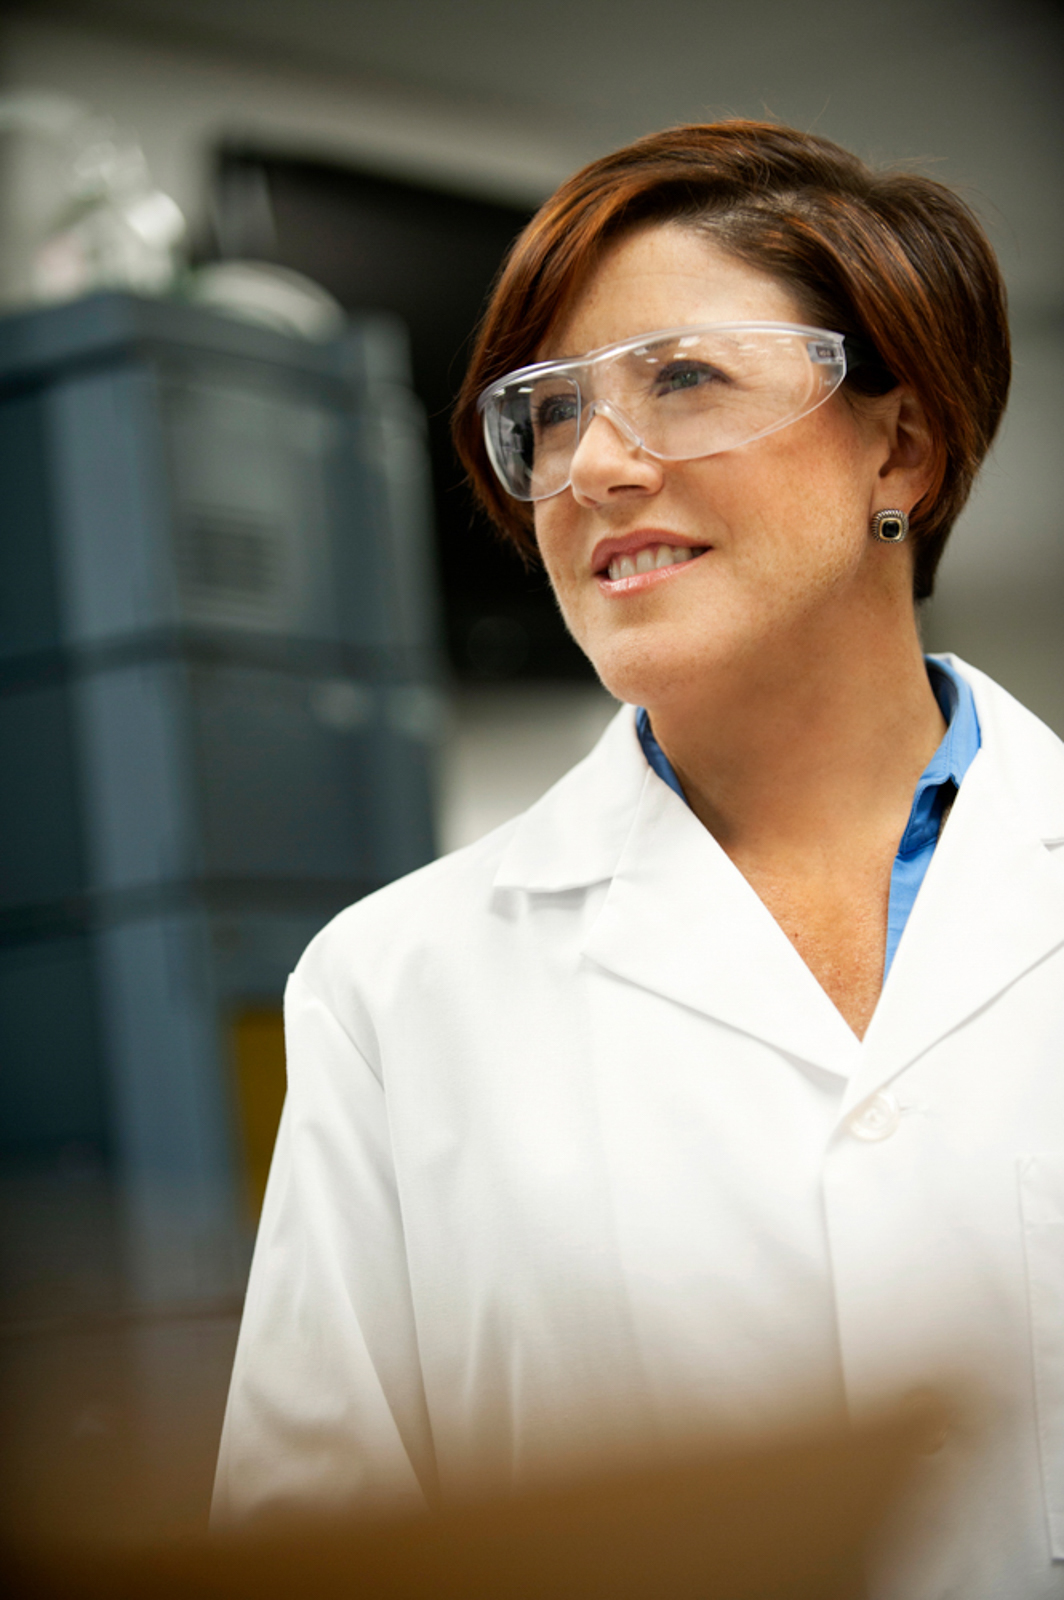 Female health professional wearing goggles, smiling and looking away